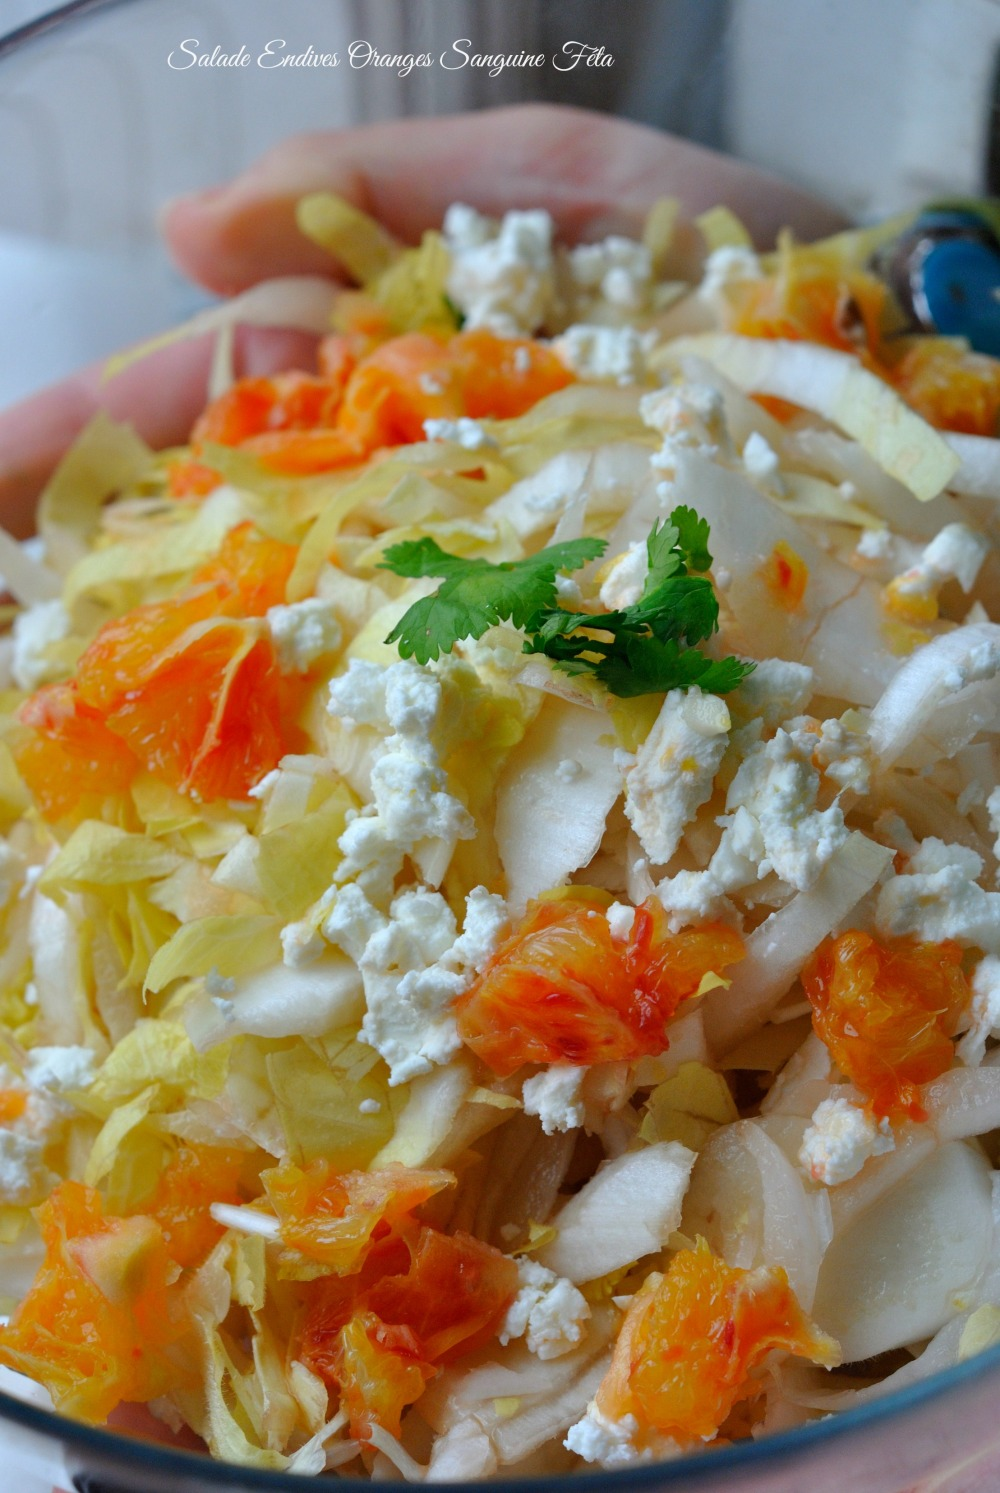 Salade Endives Orange Sanguine Féta 1